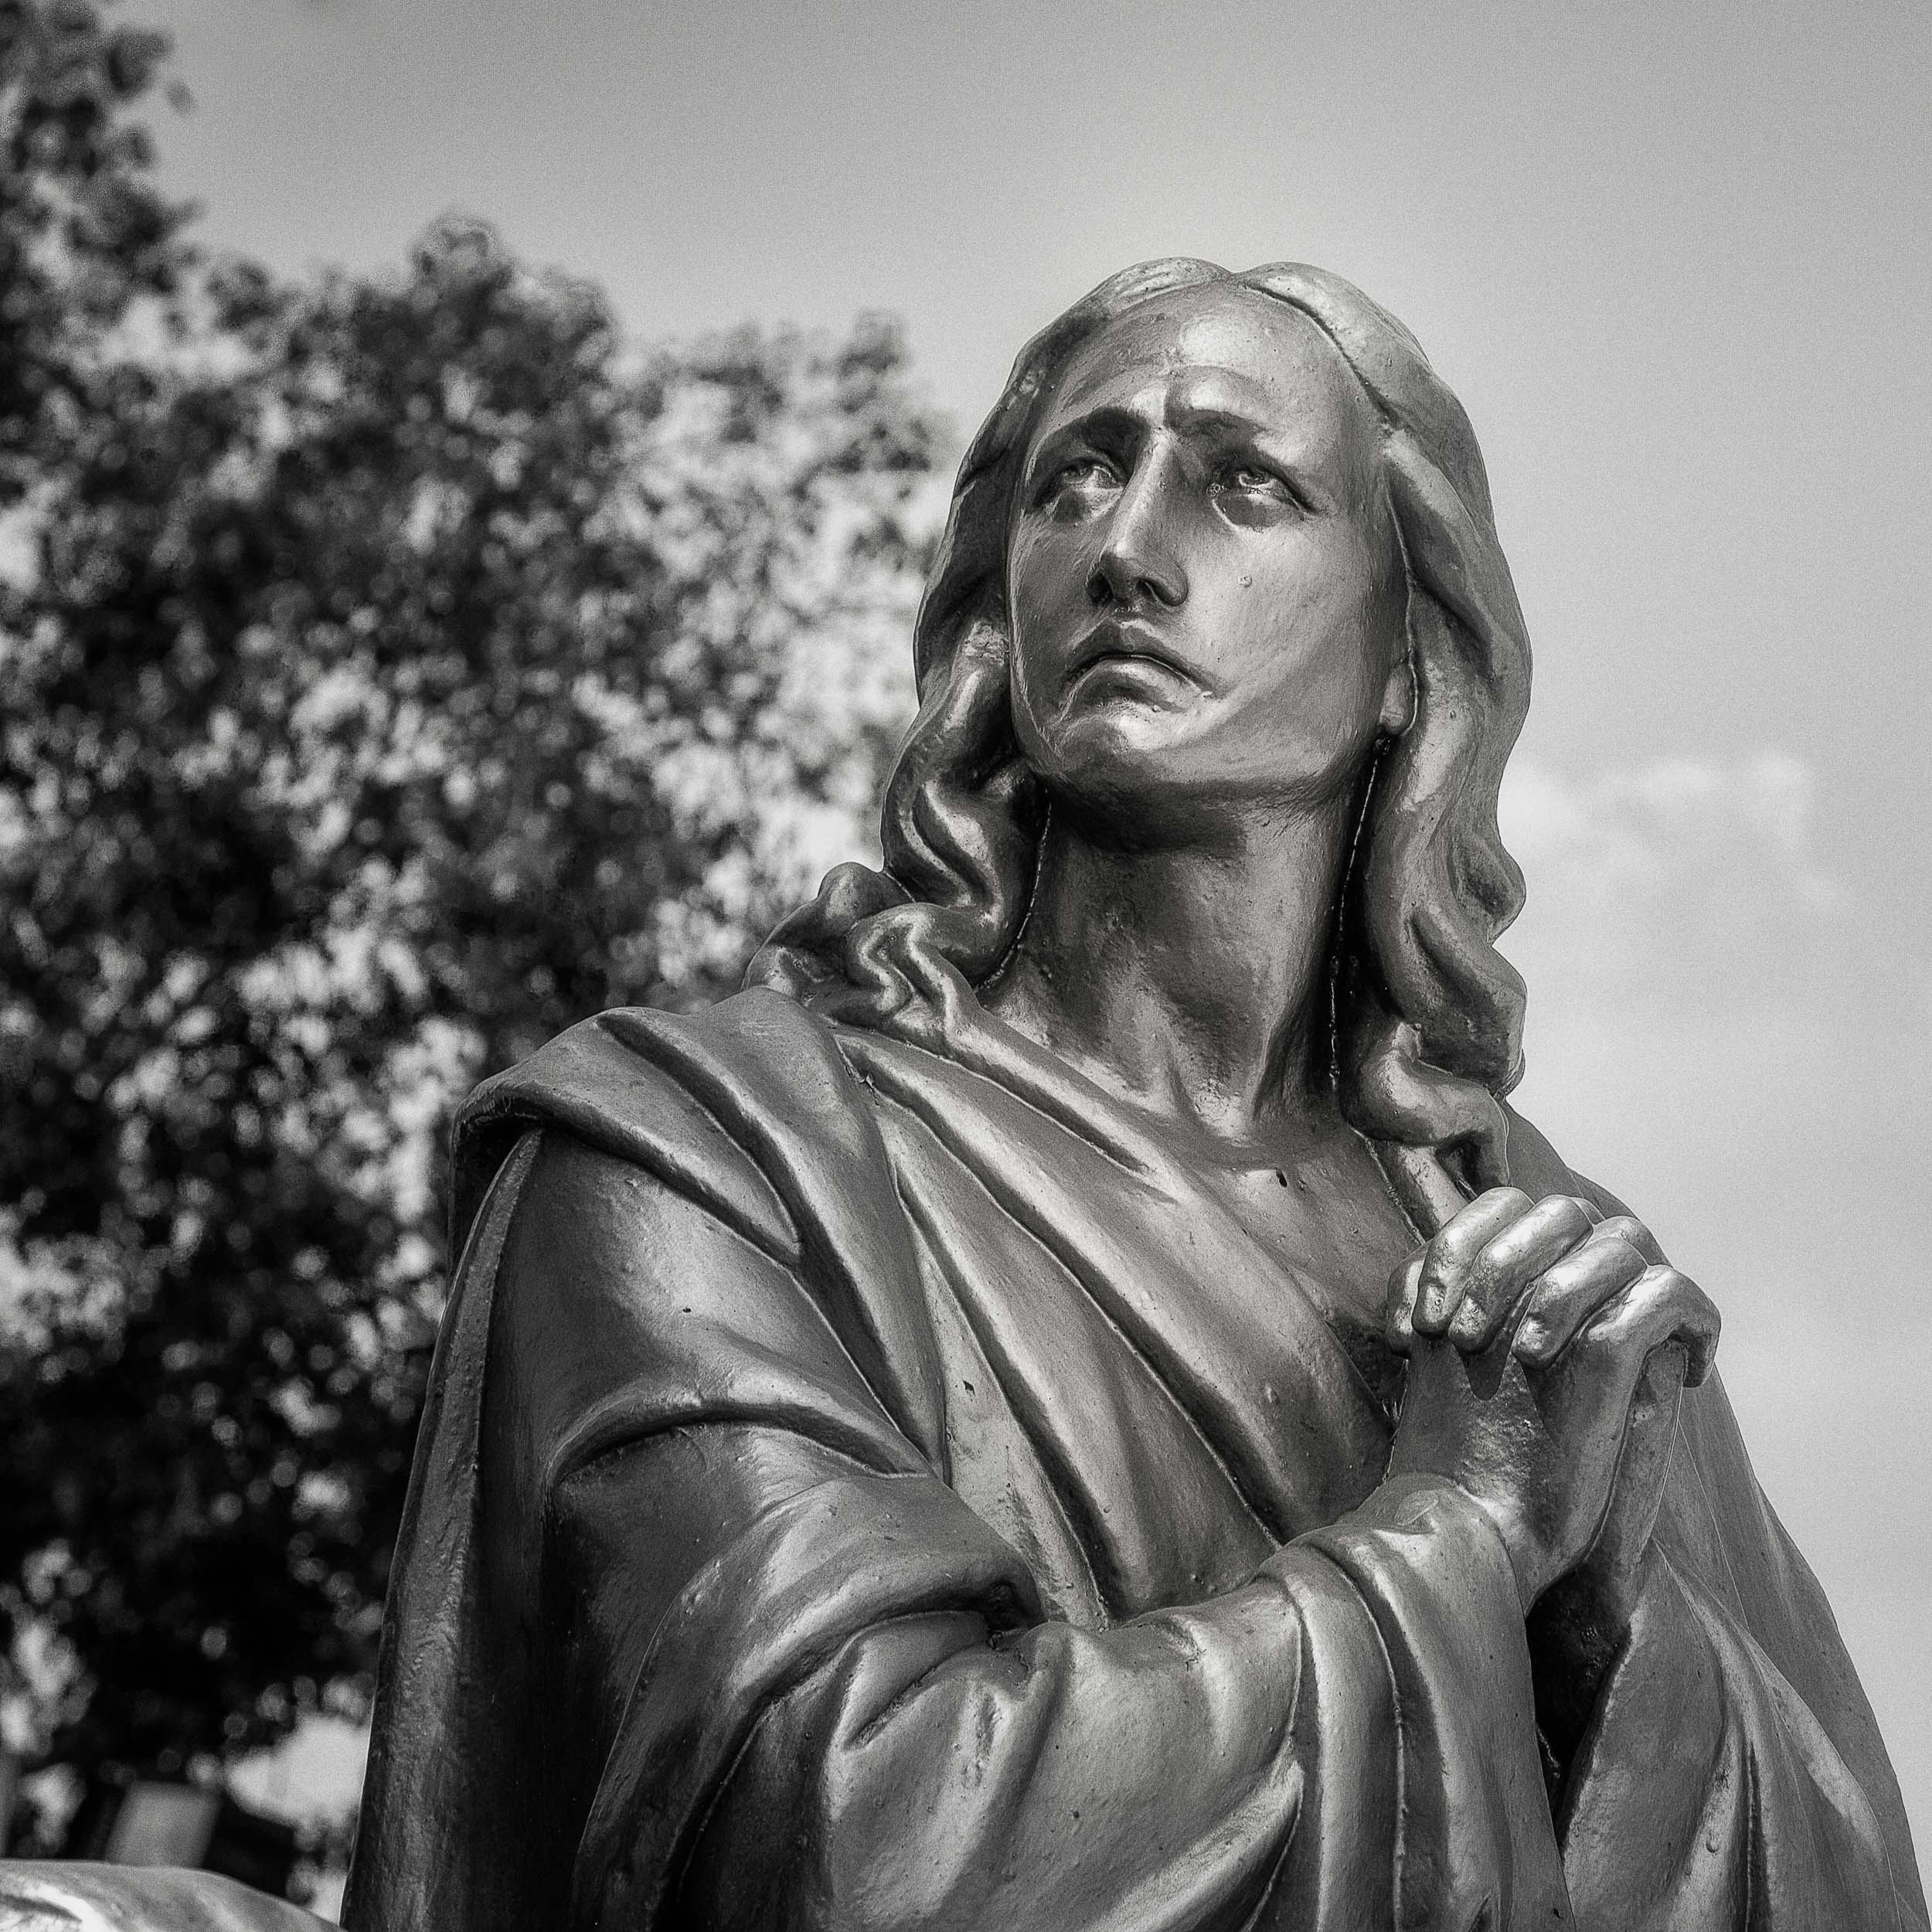 A lovely    statue   , photographed in    black and white   , on    St. Thomas Mount    on the outskirts of    Chennai in India   .